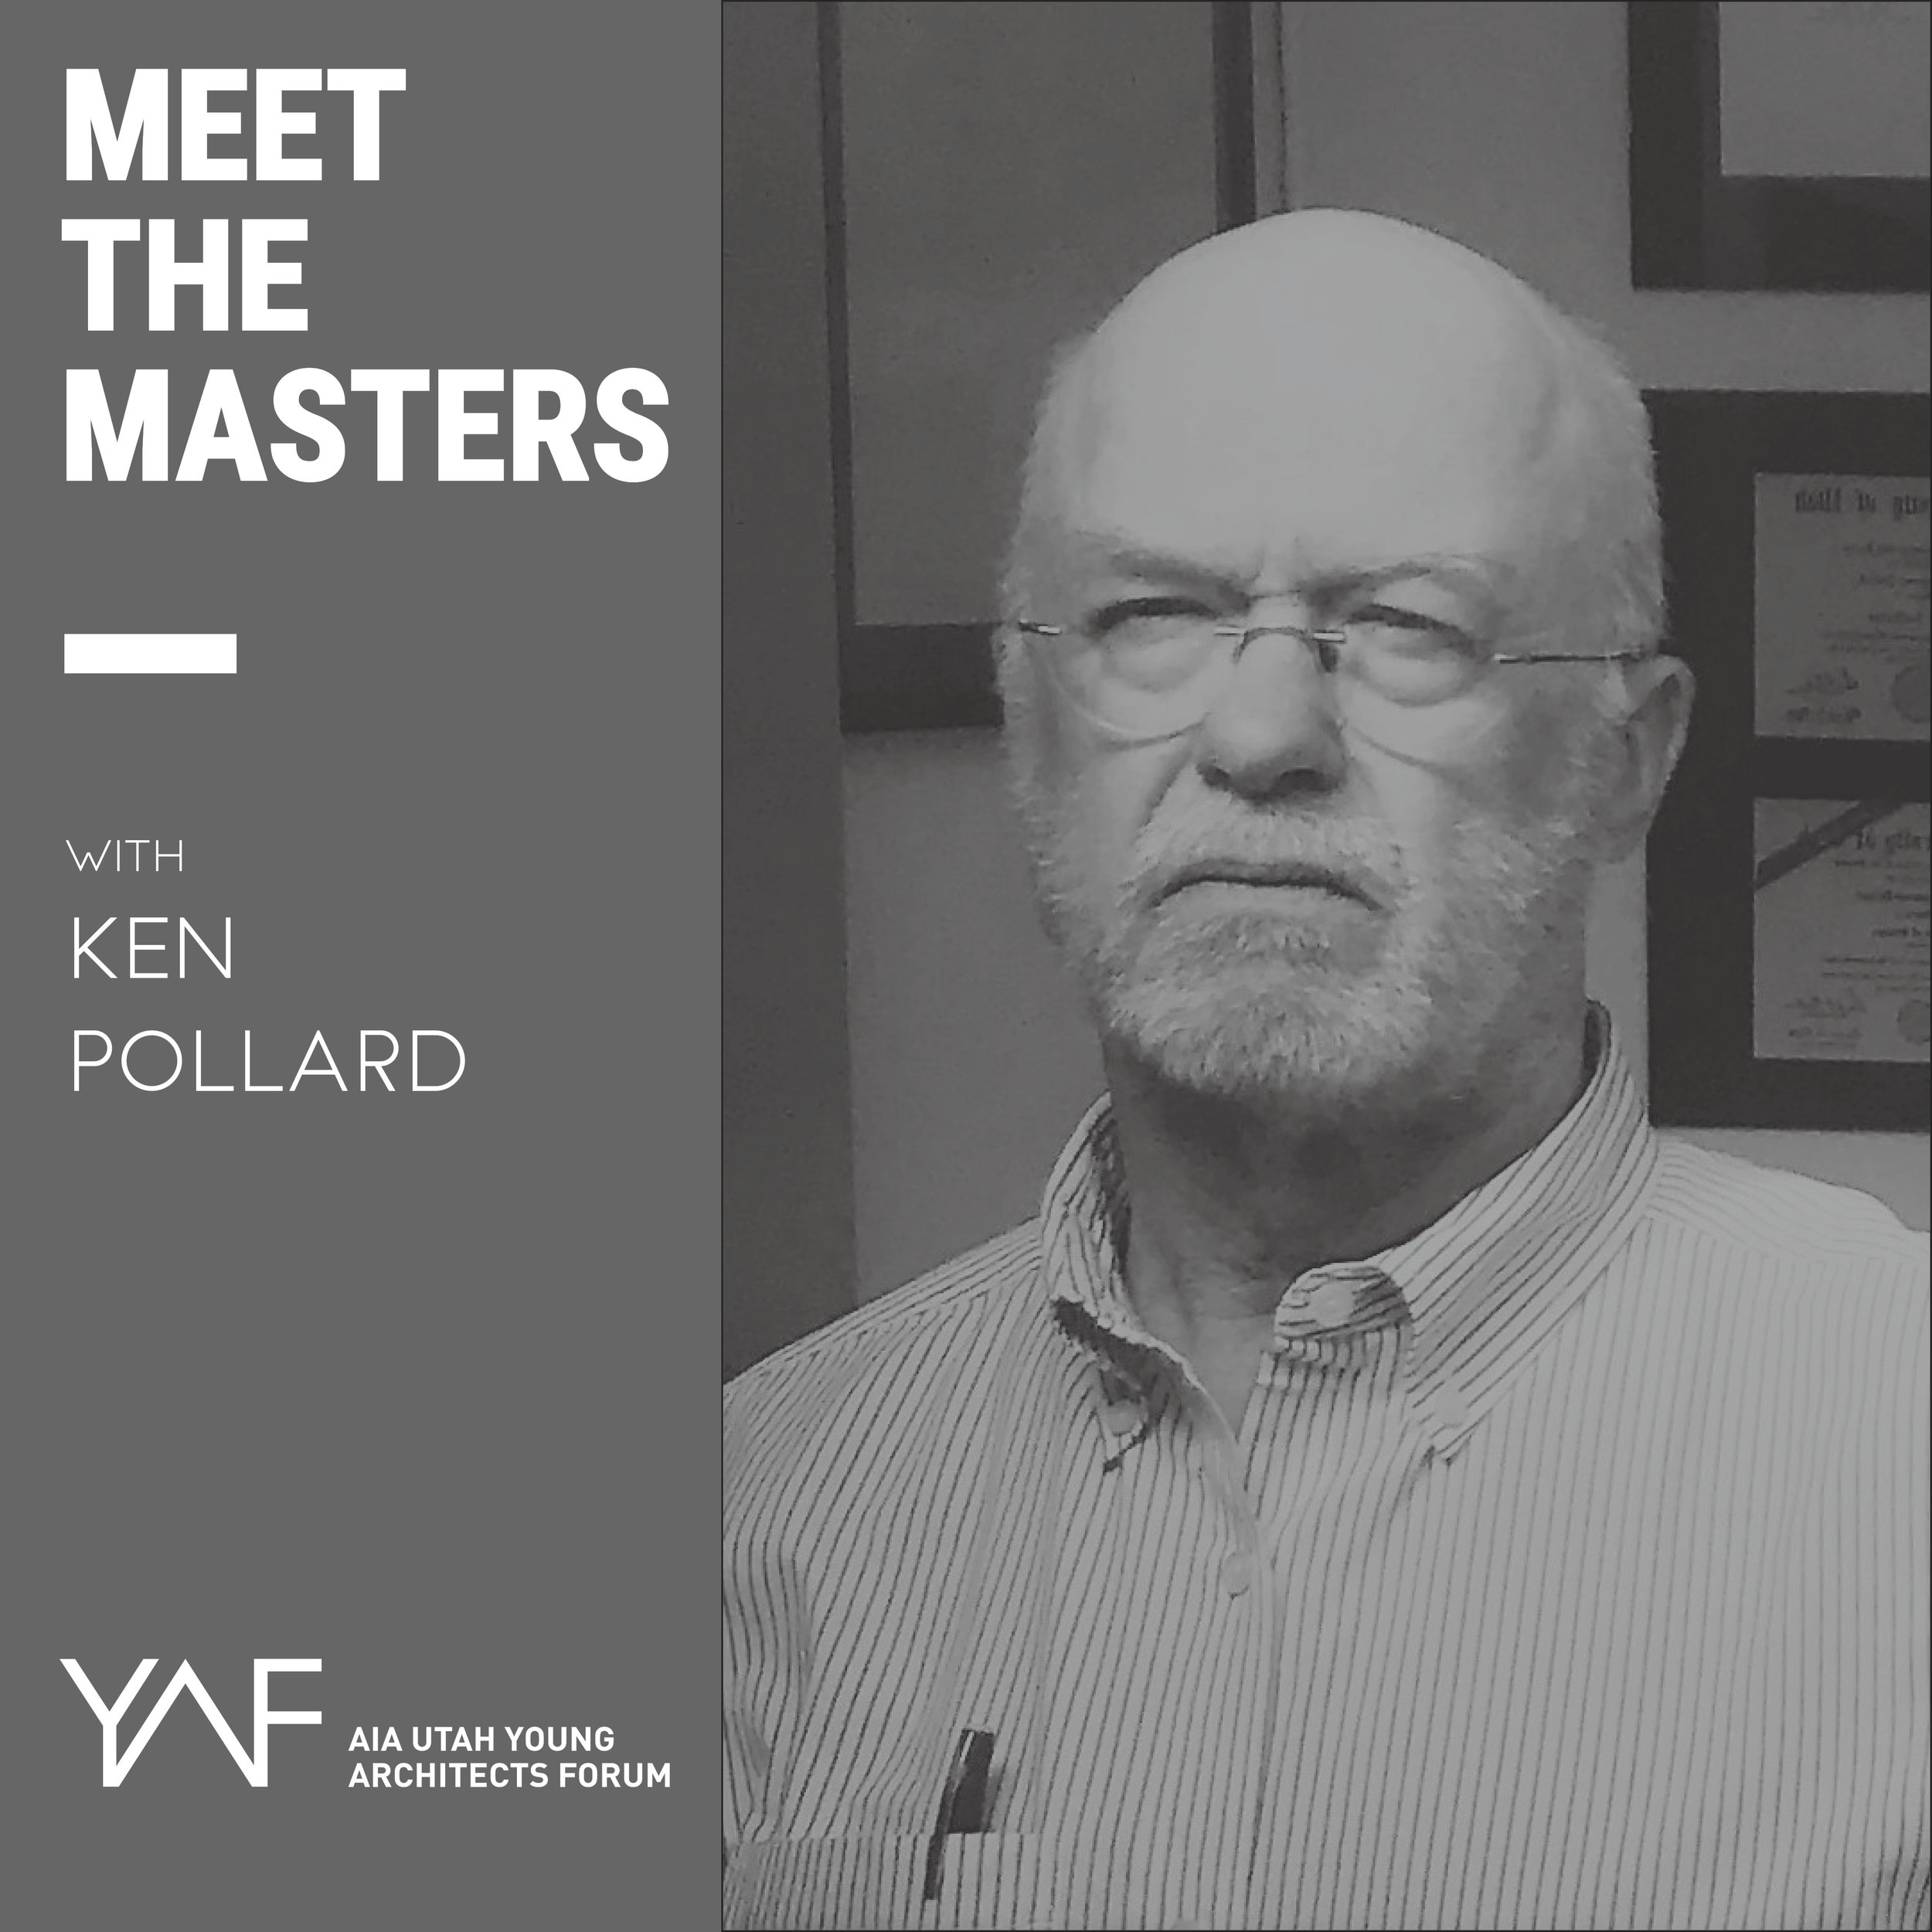 Meet the Masters with Ken Pollard    6:00 PM